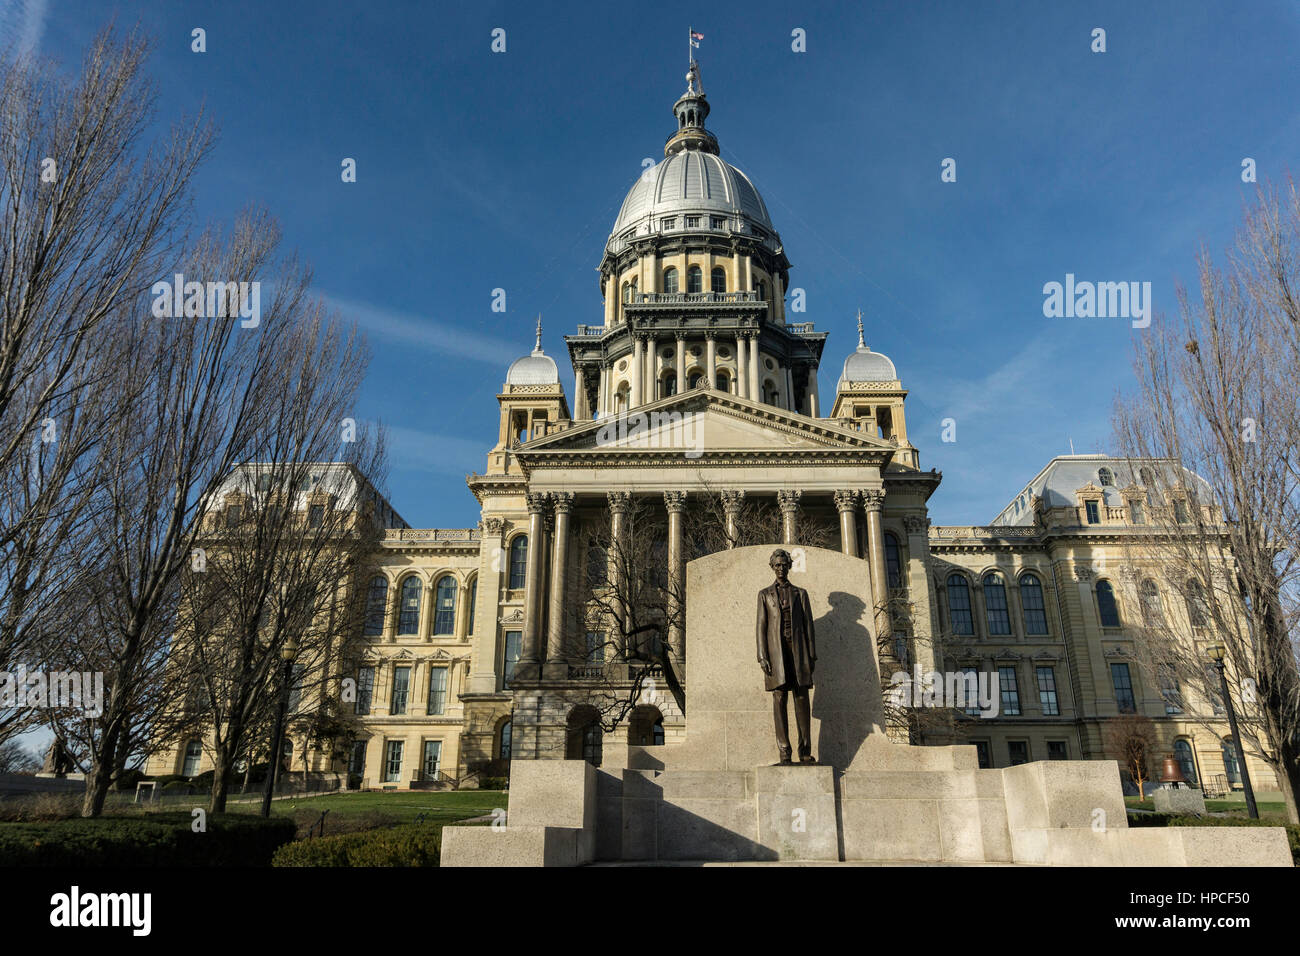 Statue of Abraham Lincoln in front of Illinois state capital. Stock Photo